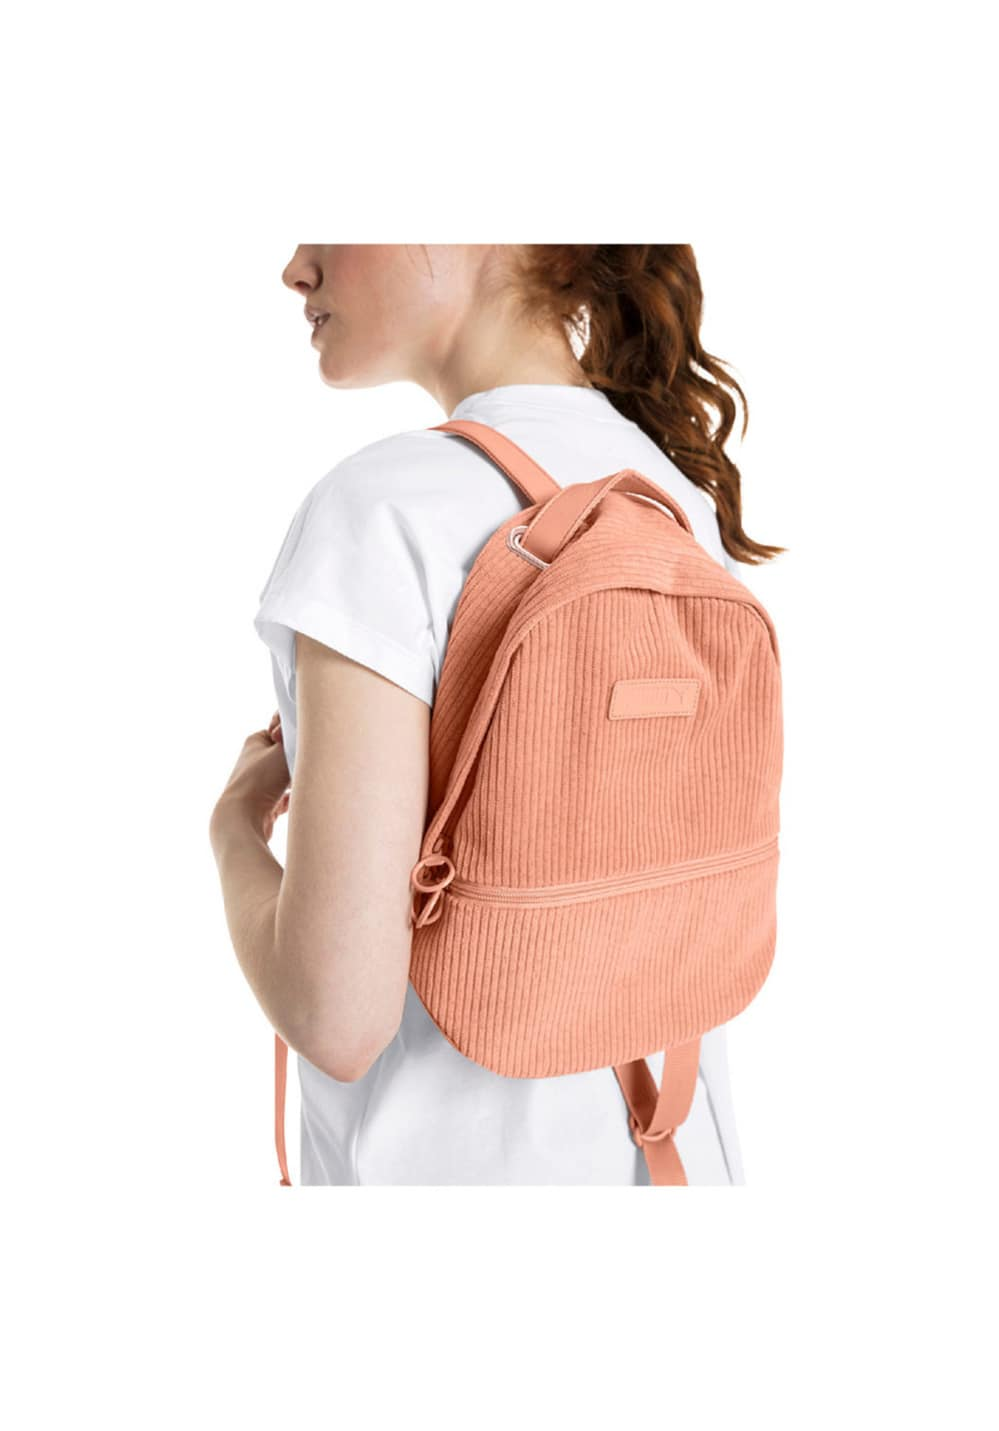 e3da93bf0ba2 Next. -32%. This product is currently out of stock. Puma. Prime Time  Archive Backpack - Backpacks for Women